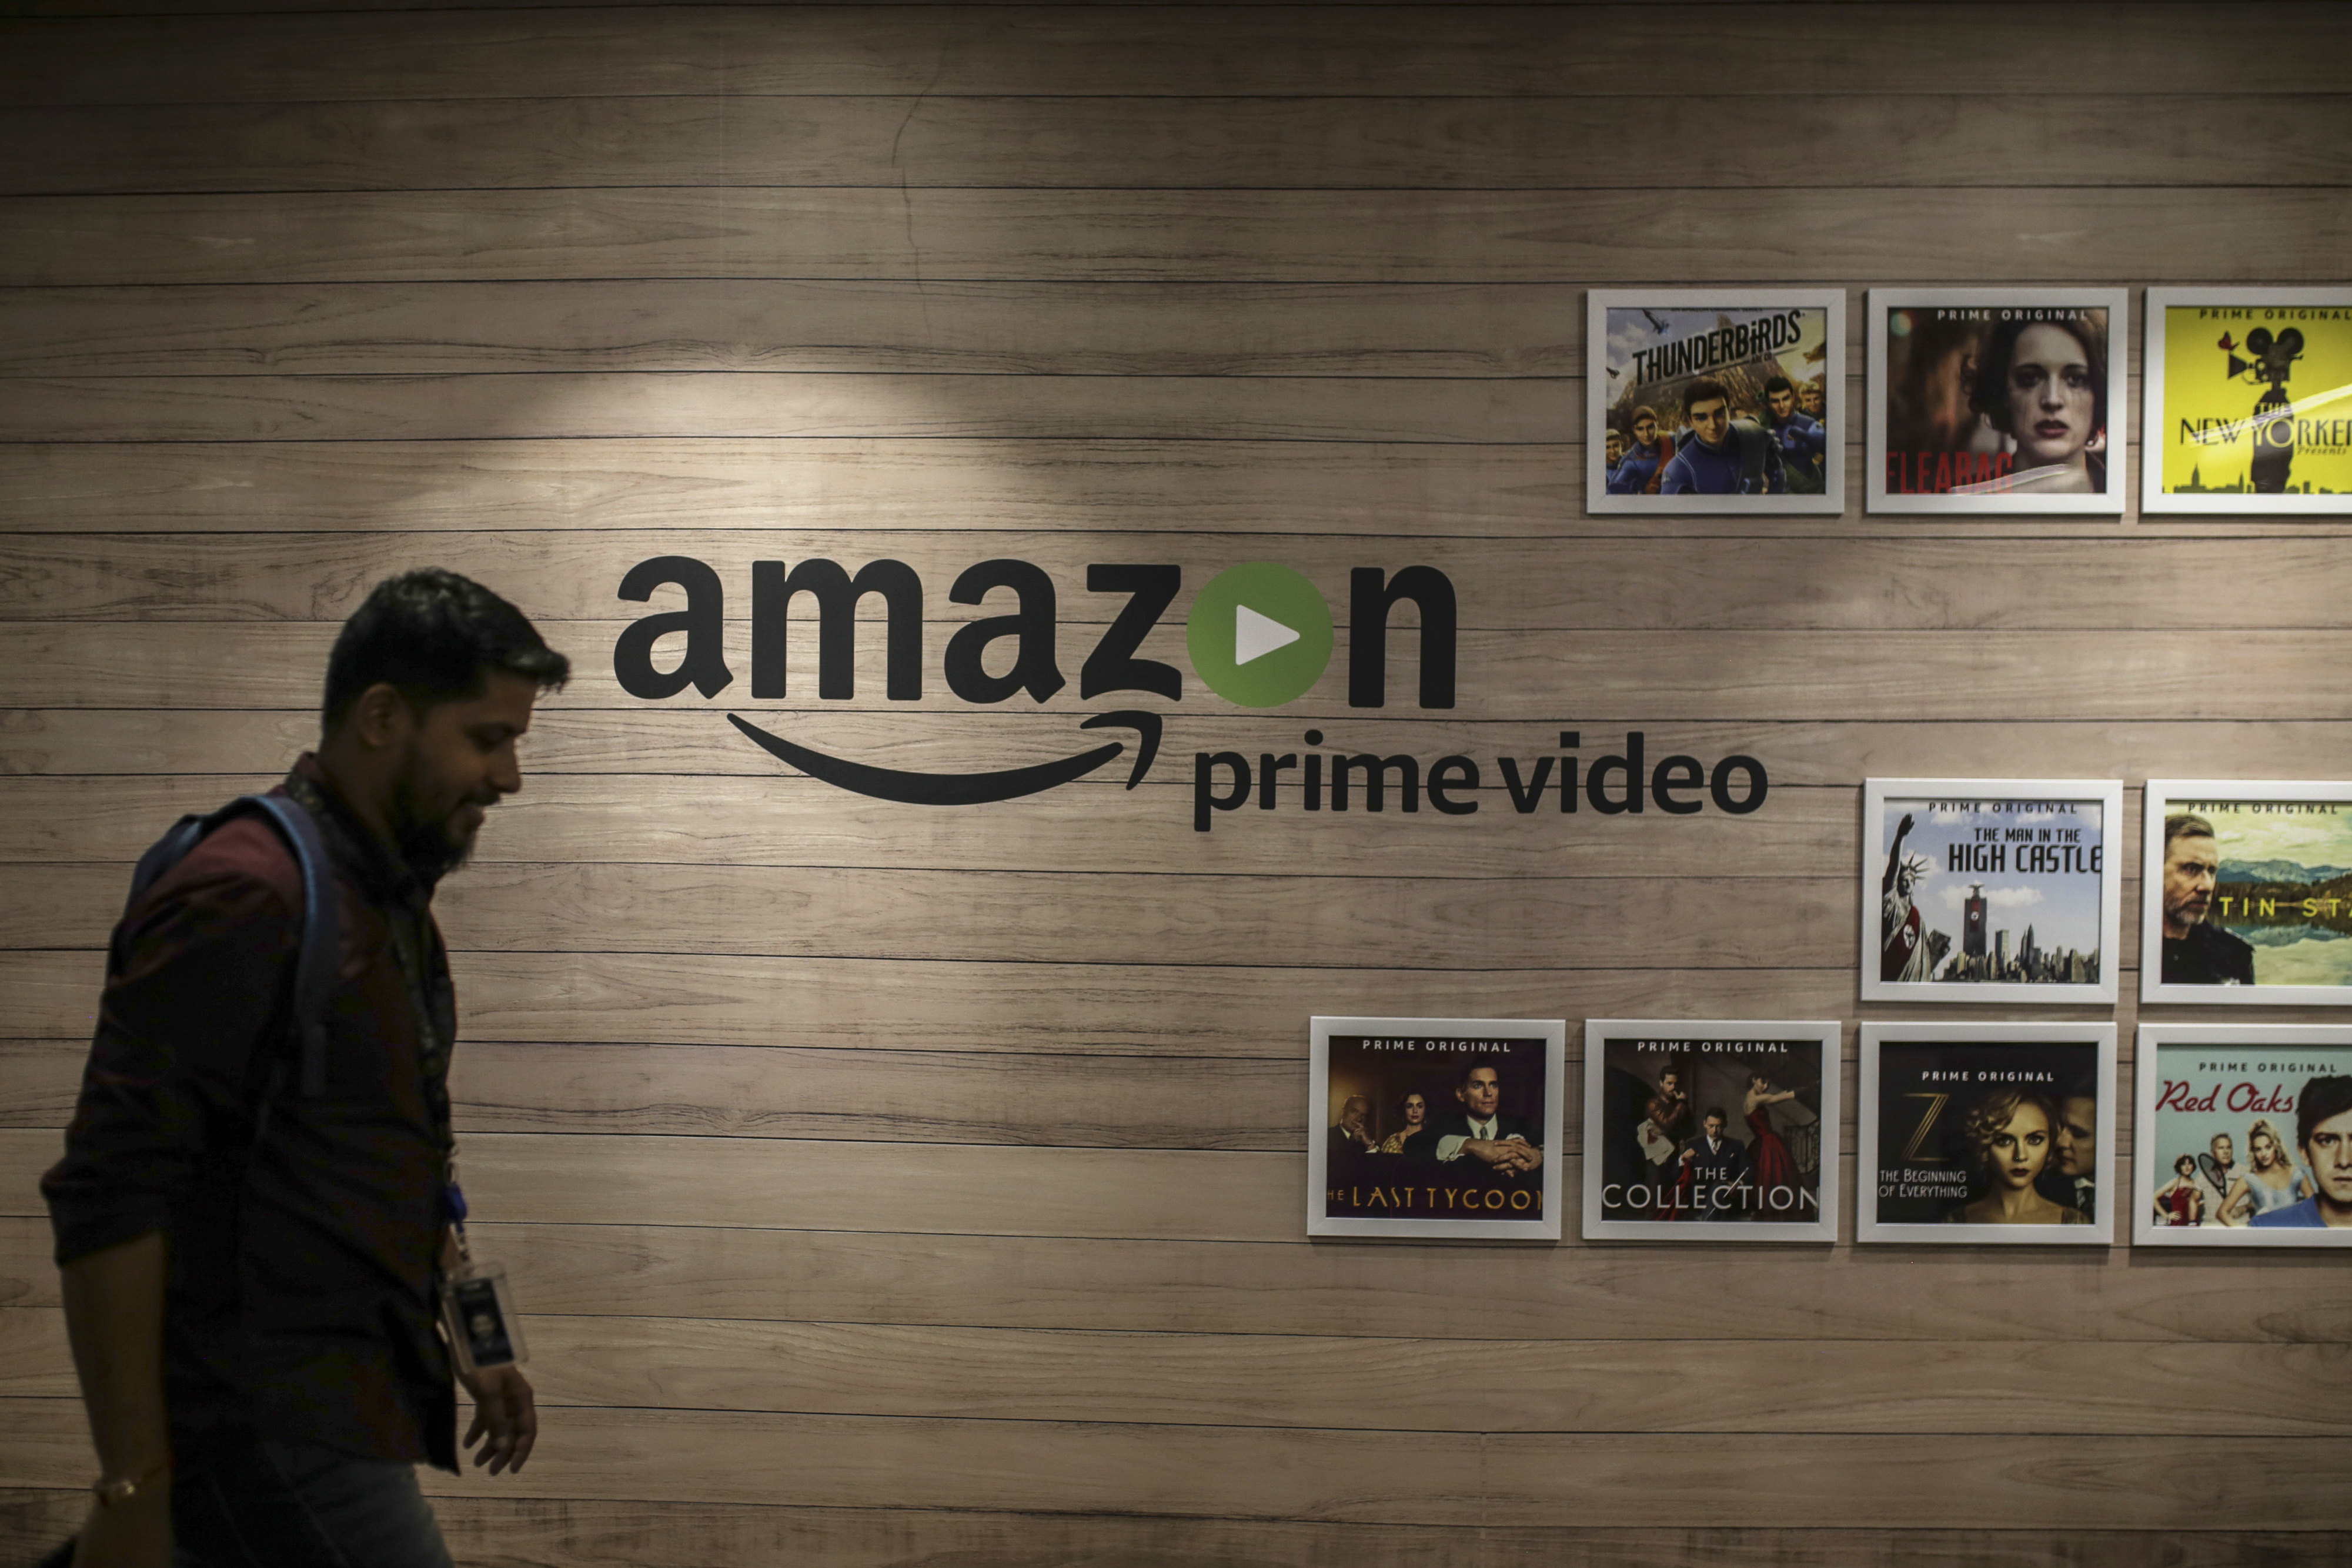 Amazon Prime Video to globally premiere 7 Indian movies as theaters remain closed  Manish Singh  8 hours